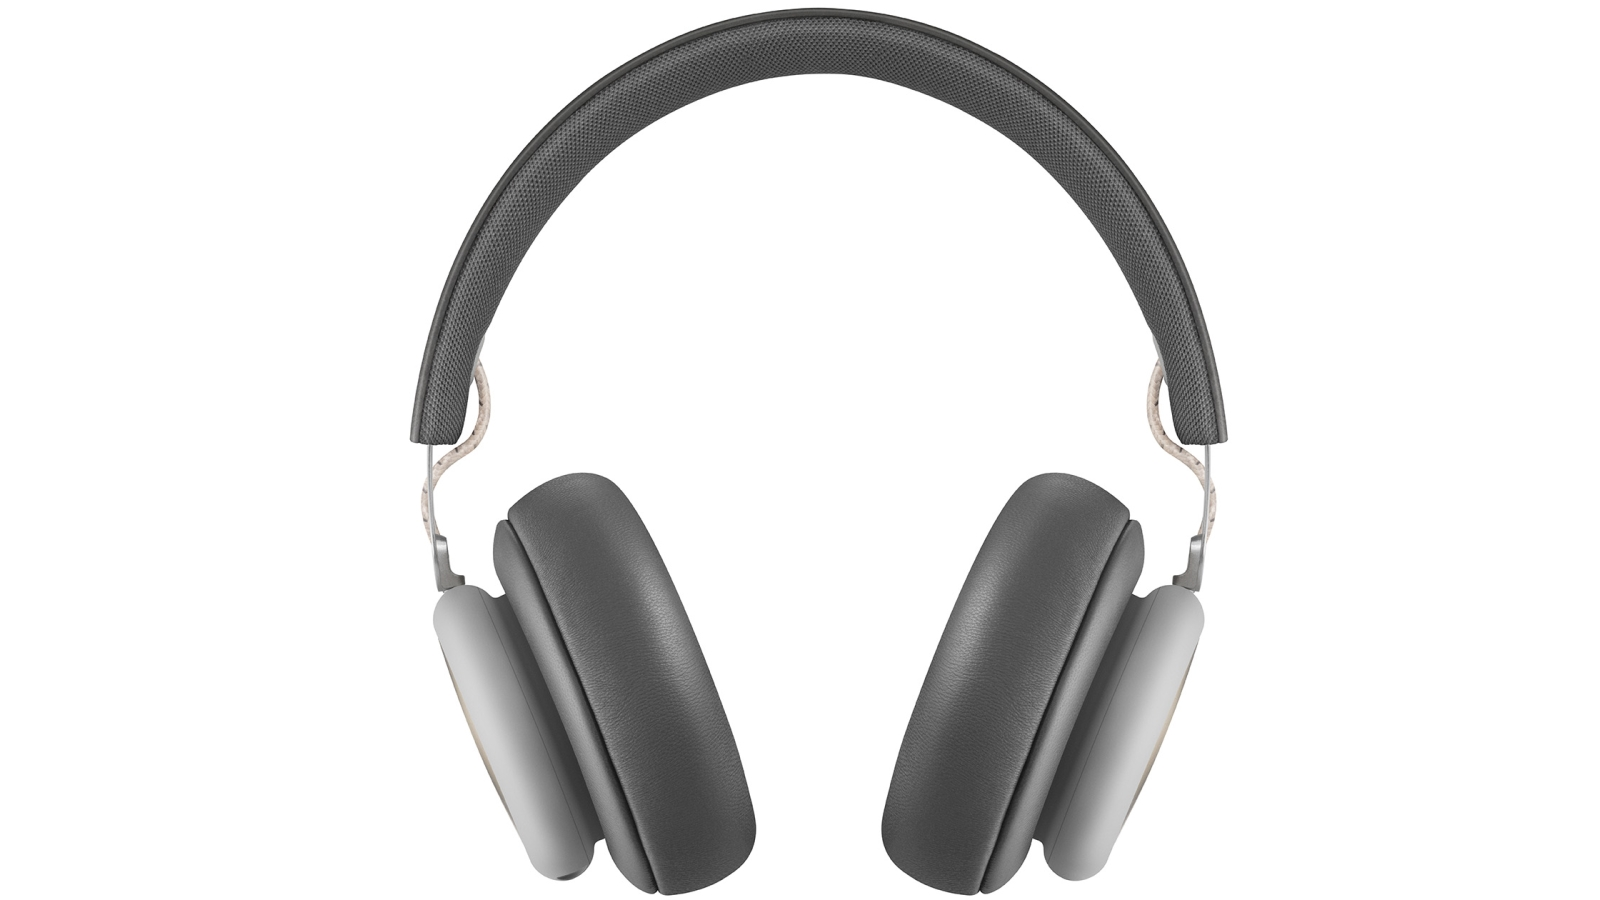 9c1d536d45549a Buy B&O PLAY Beoplay H4 Wireless Over Ear Headphones - Charcoal Grey |  Harvey Norman AU